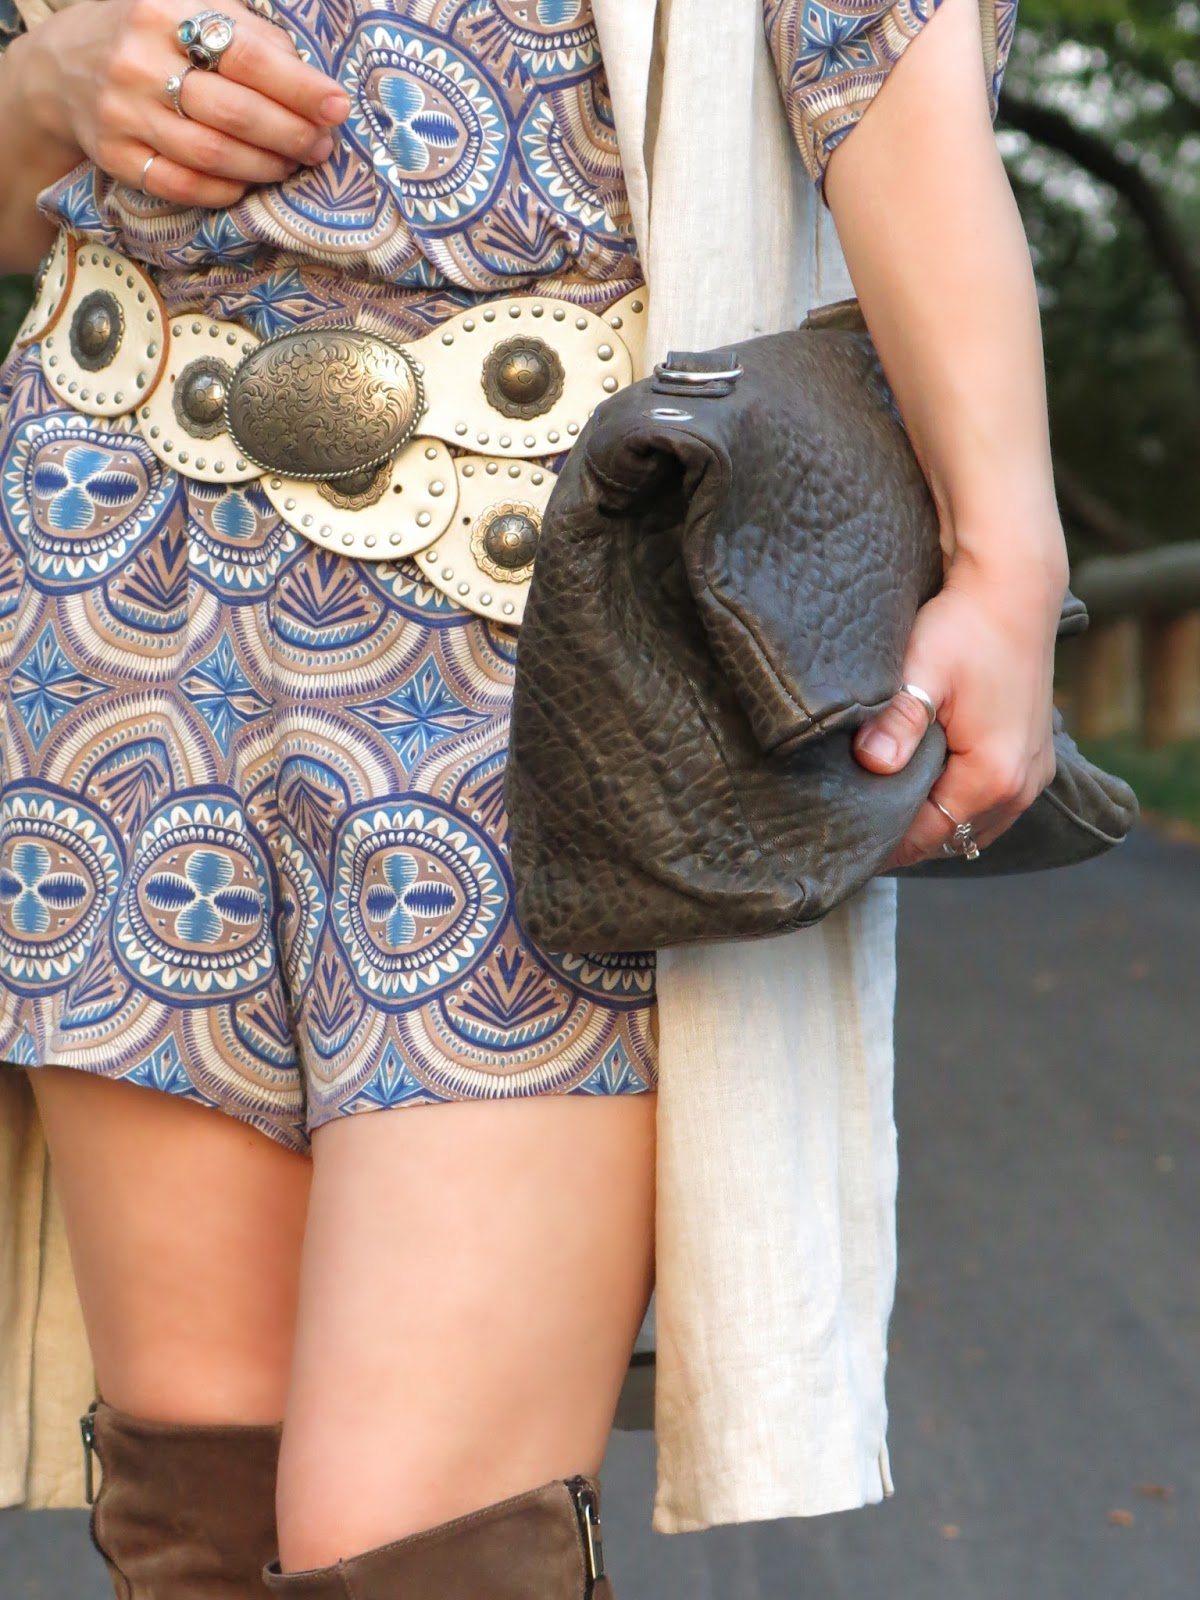 styling a patterned romper with a sleeveless coat, concho belt, and oversized clutch